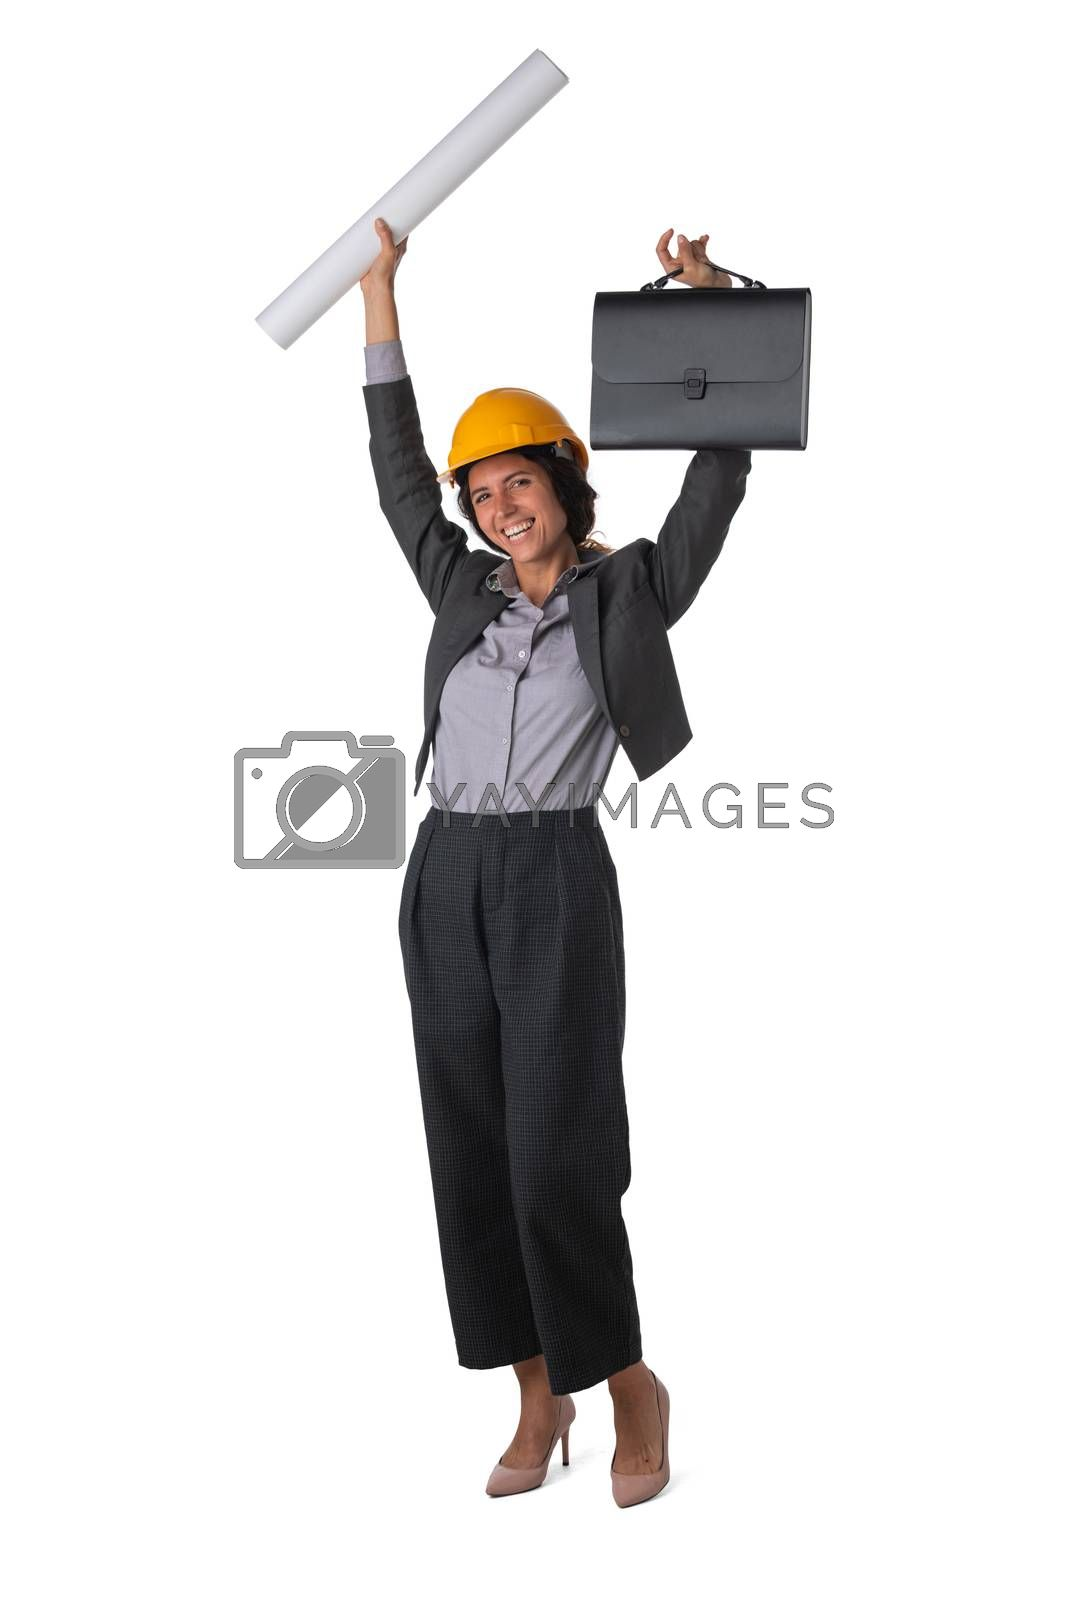 Portrait of female engeneer architect in yellow hardhat and business suit with raised arms isolated on white background full length studio portrait